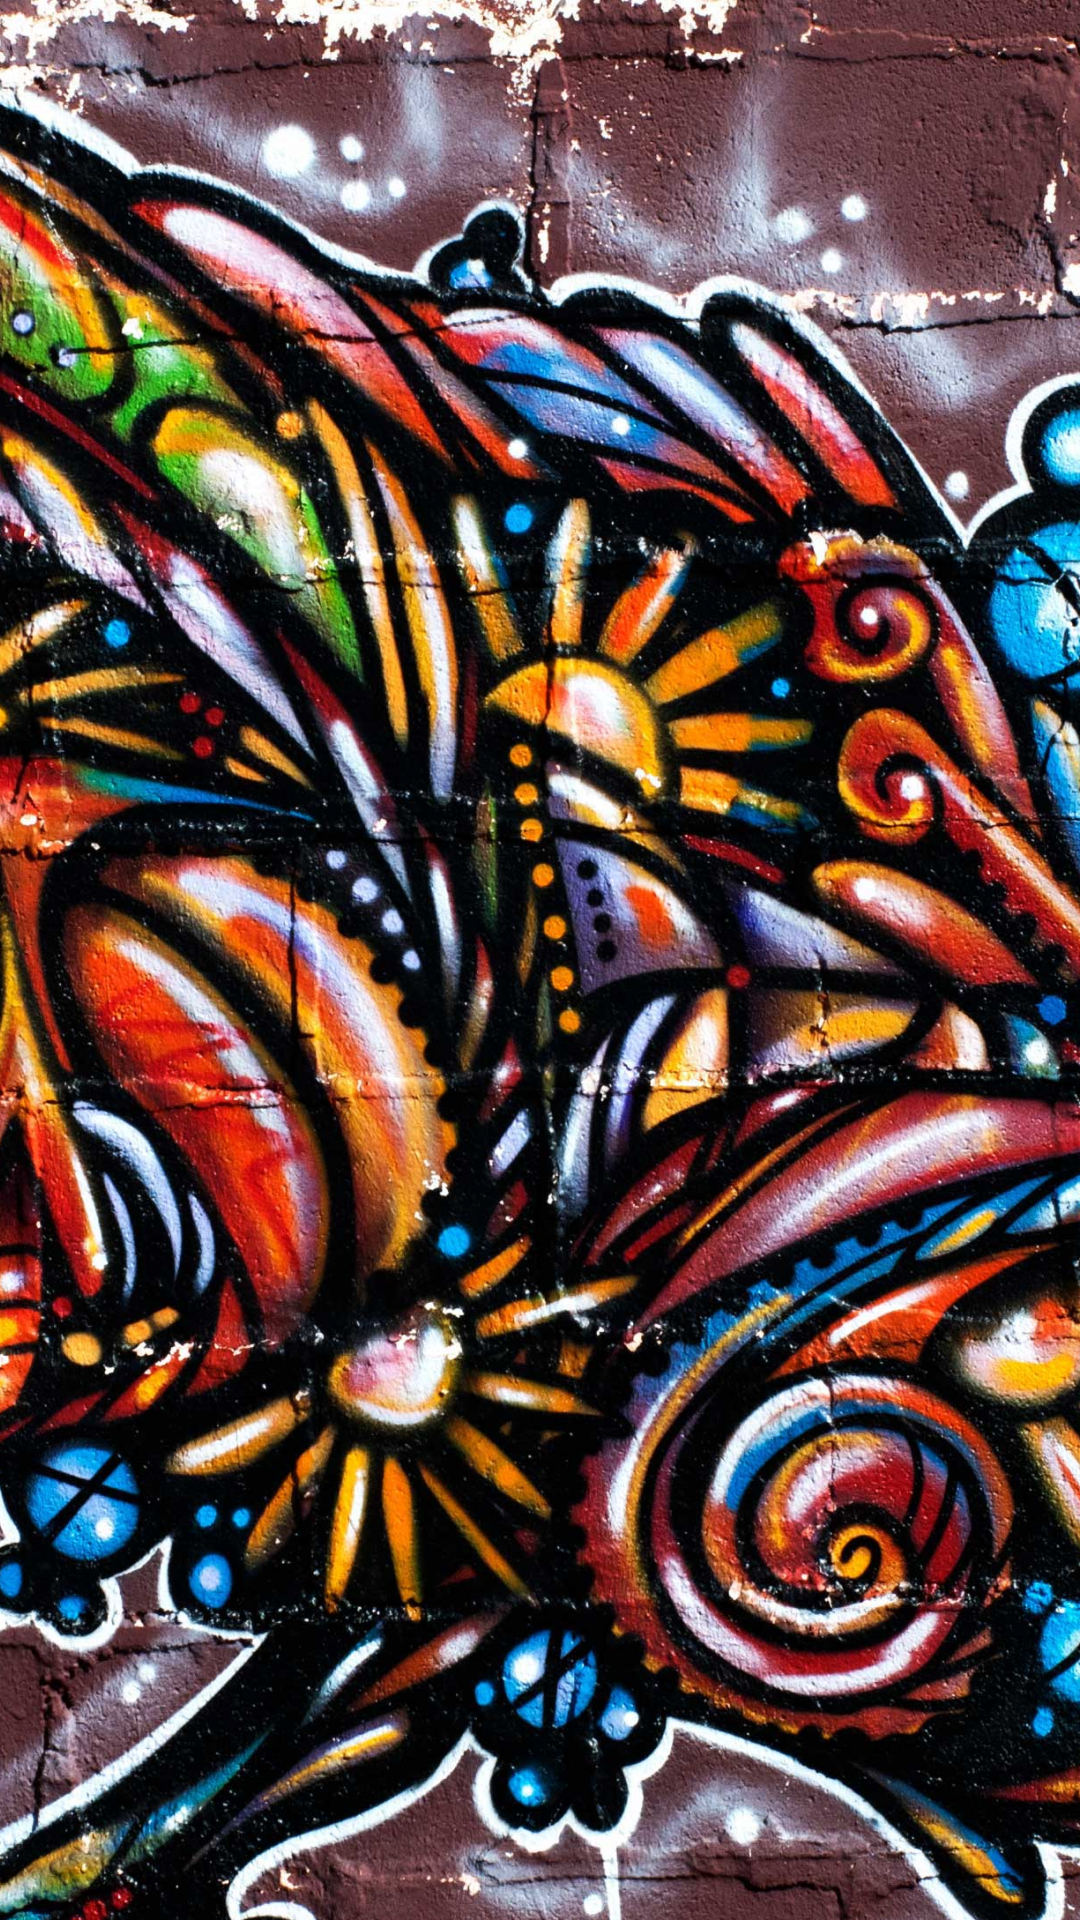 Free download Cool Graffiti Wallpaper Designs Cool colorful 3872x2178 for your Desktop, Mobile ...